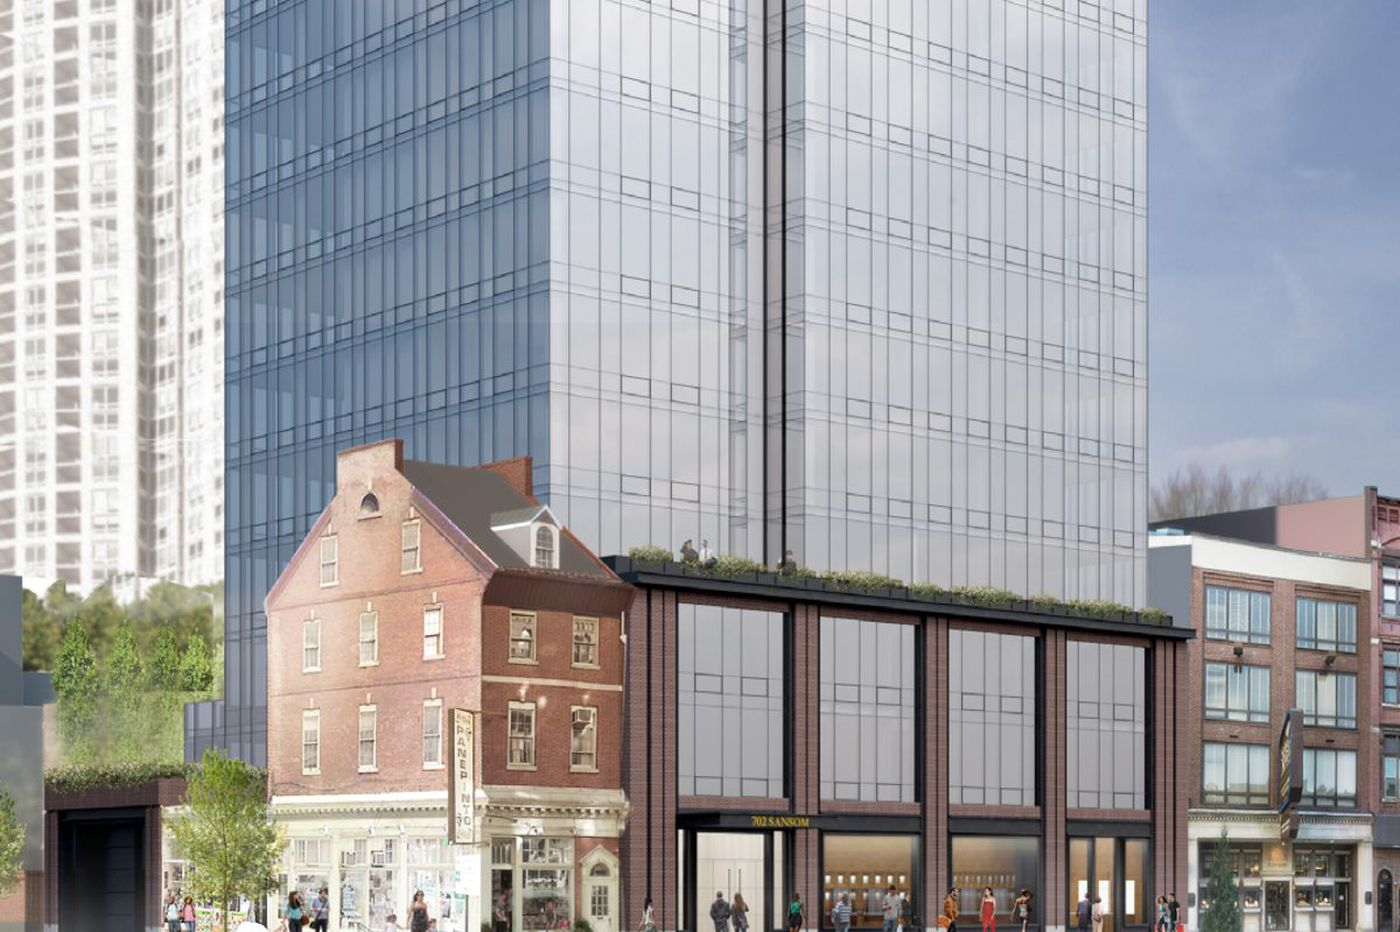 Toll's new tower design for Jewelers Row is an architectural zombie | Inga Saffron